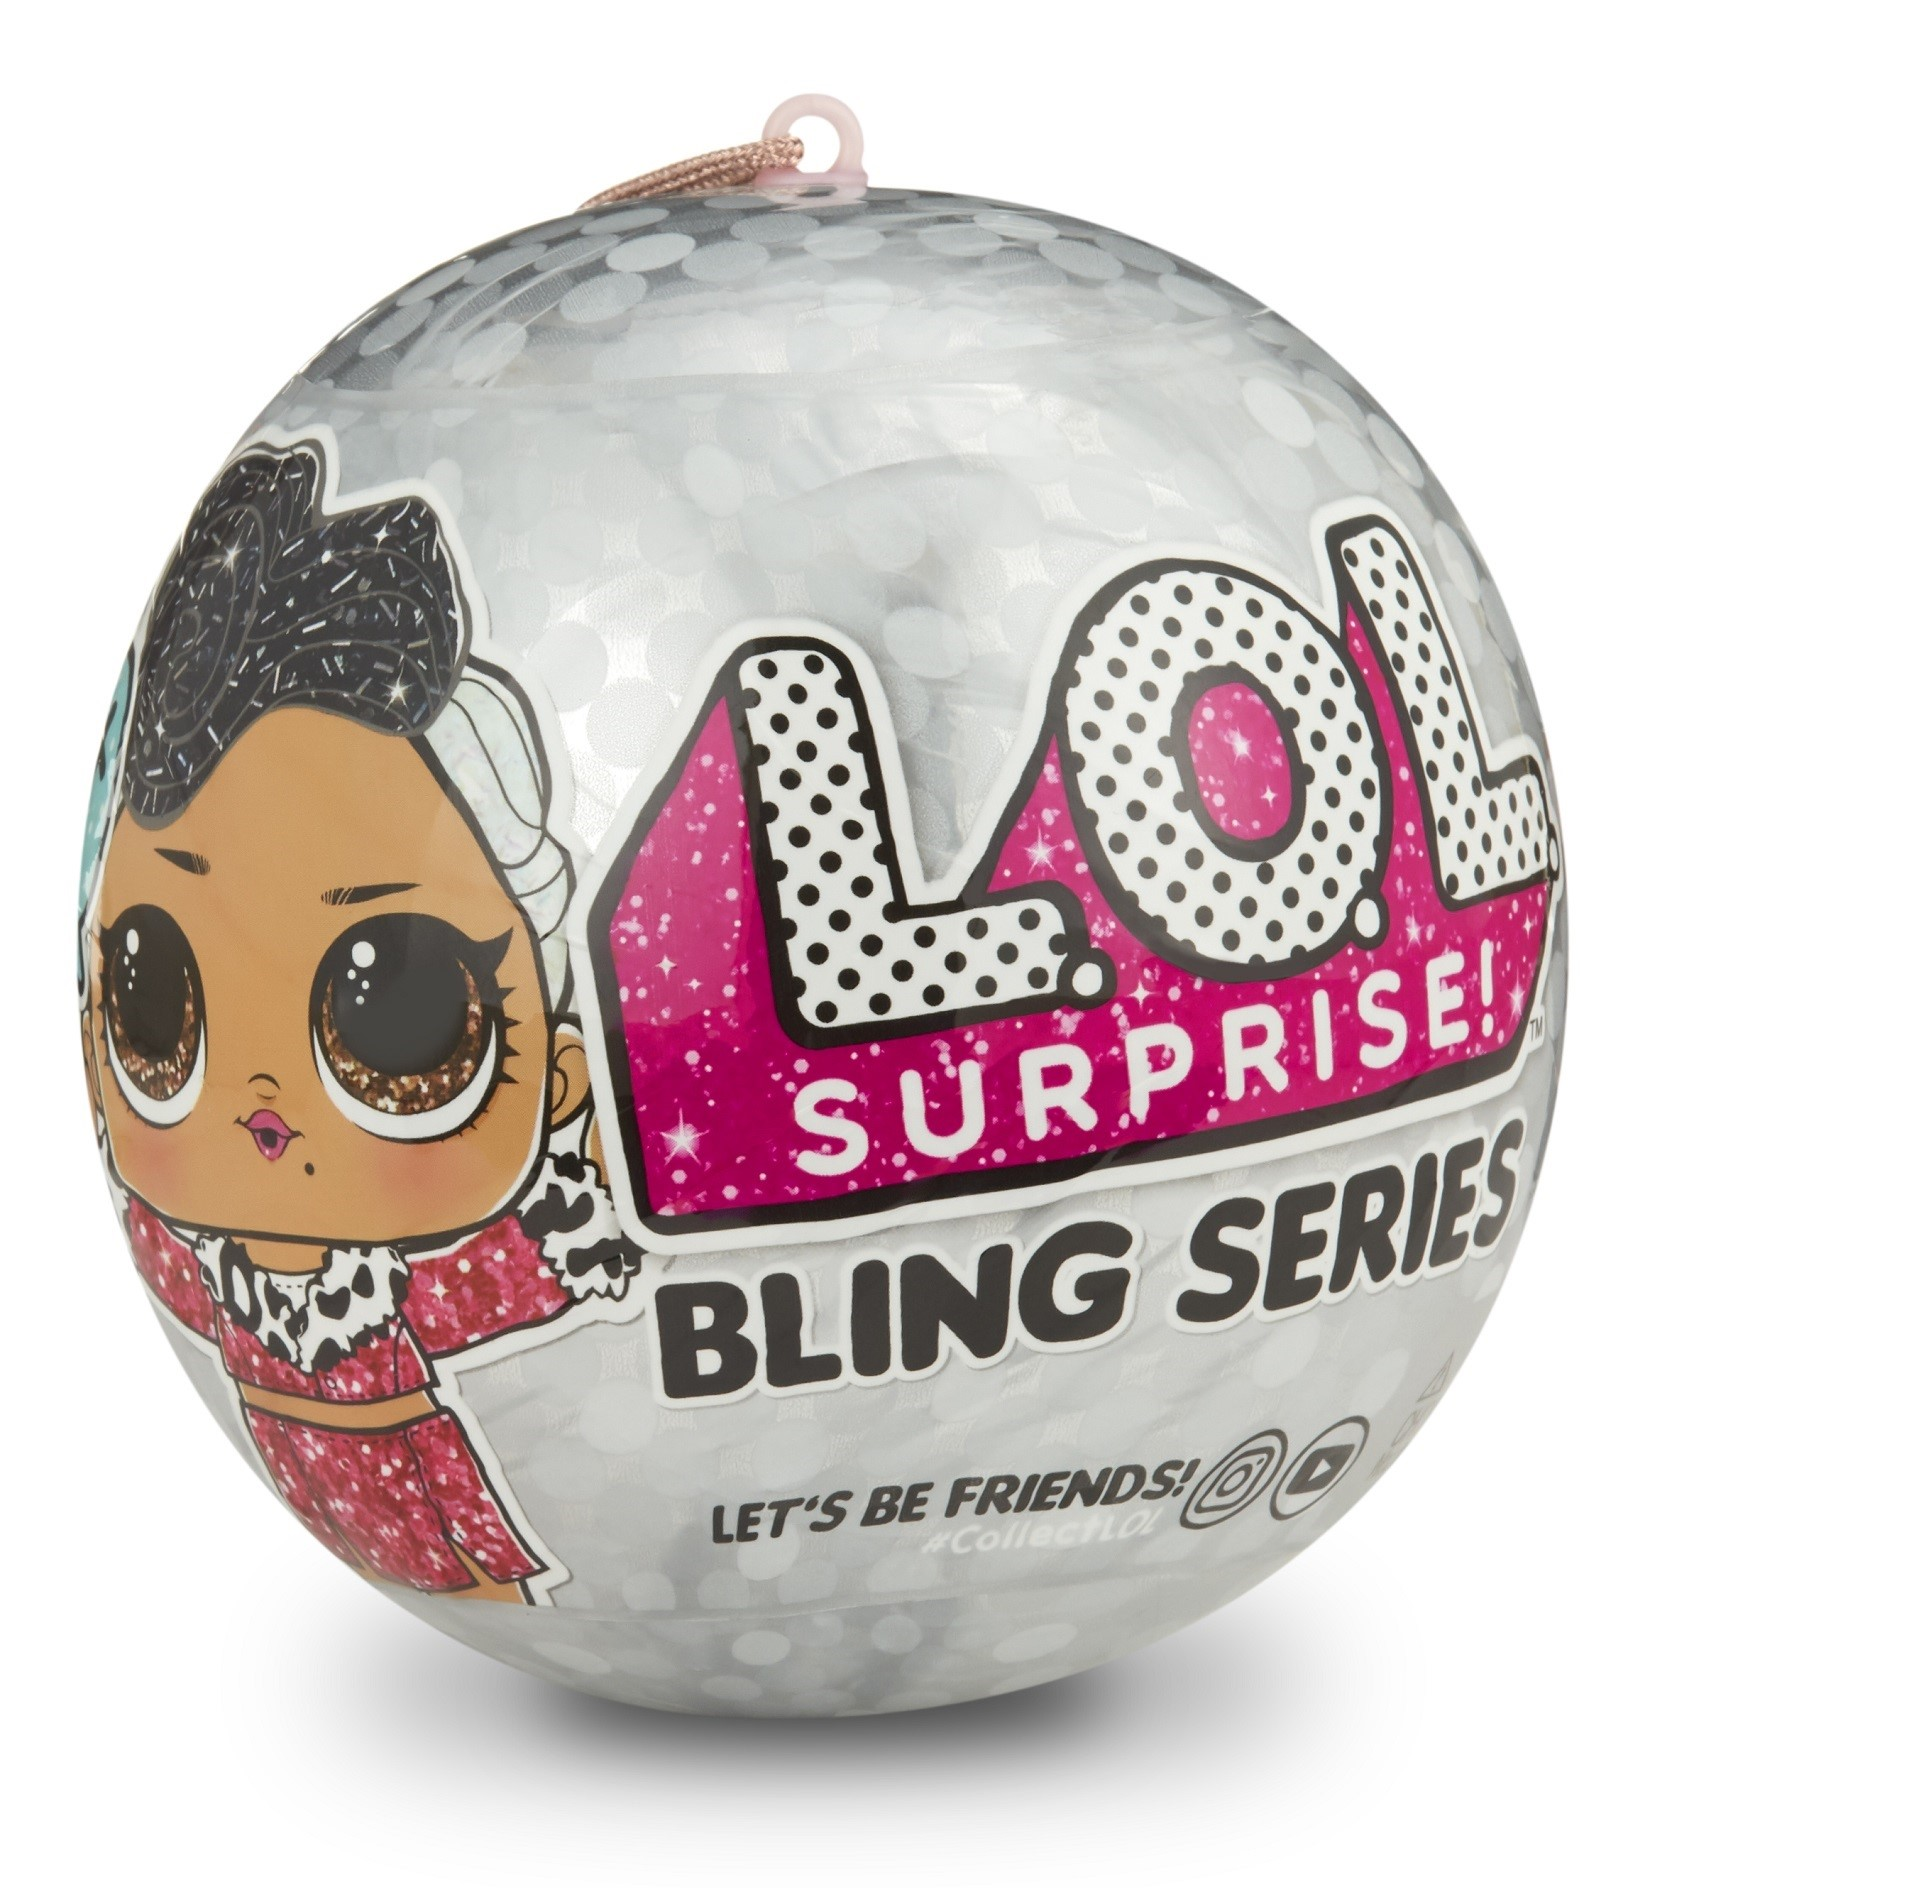 L.O.L. Surprise! Bling Ball Series with 7 Surprises